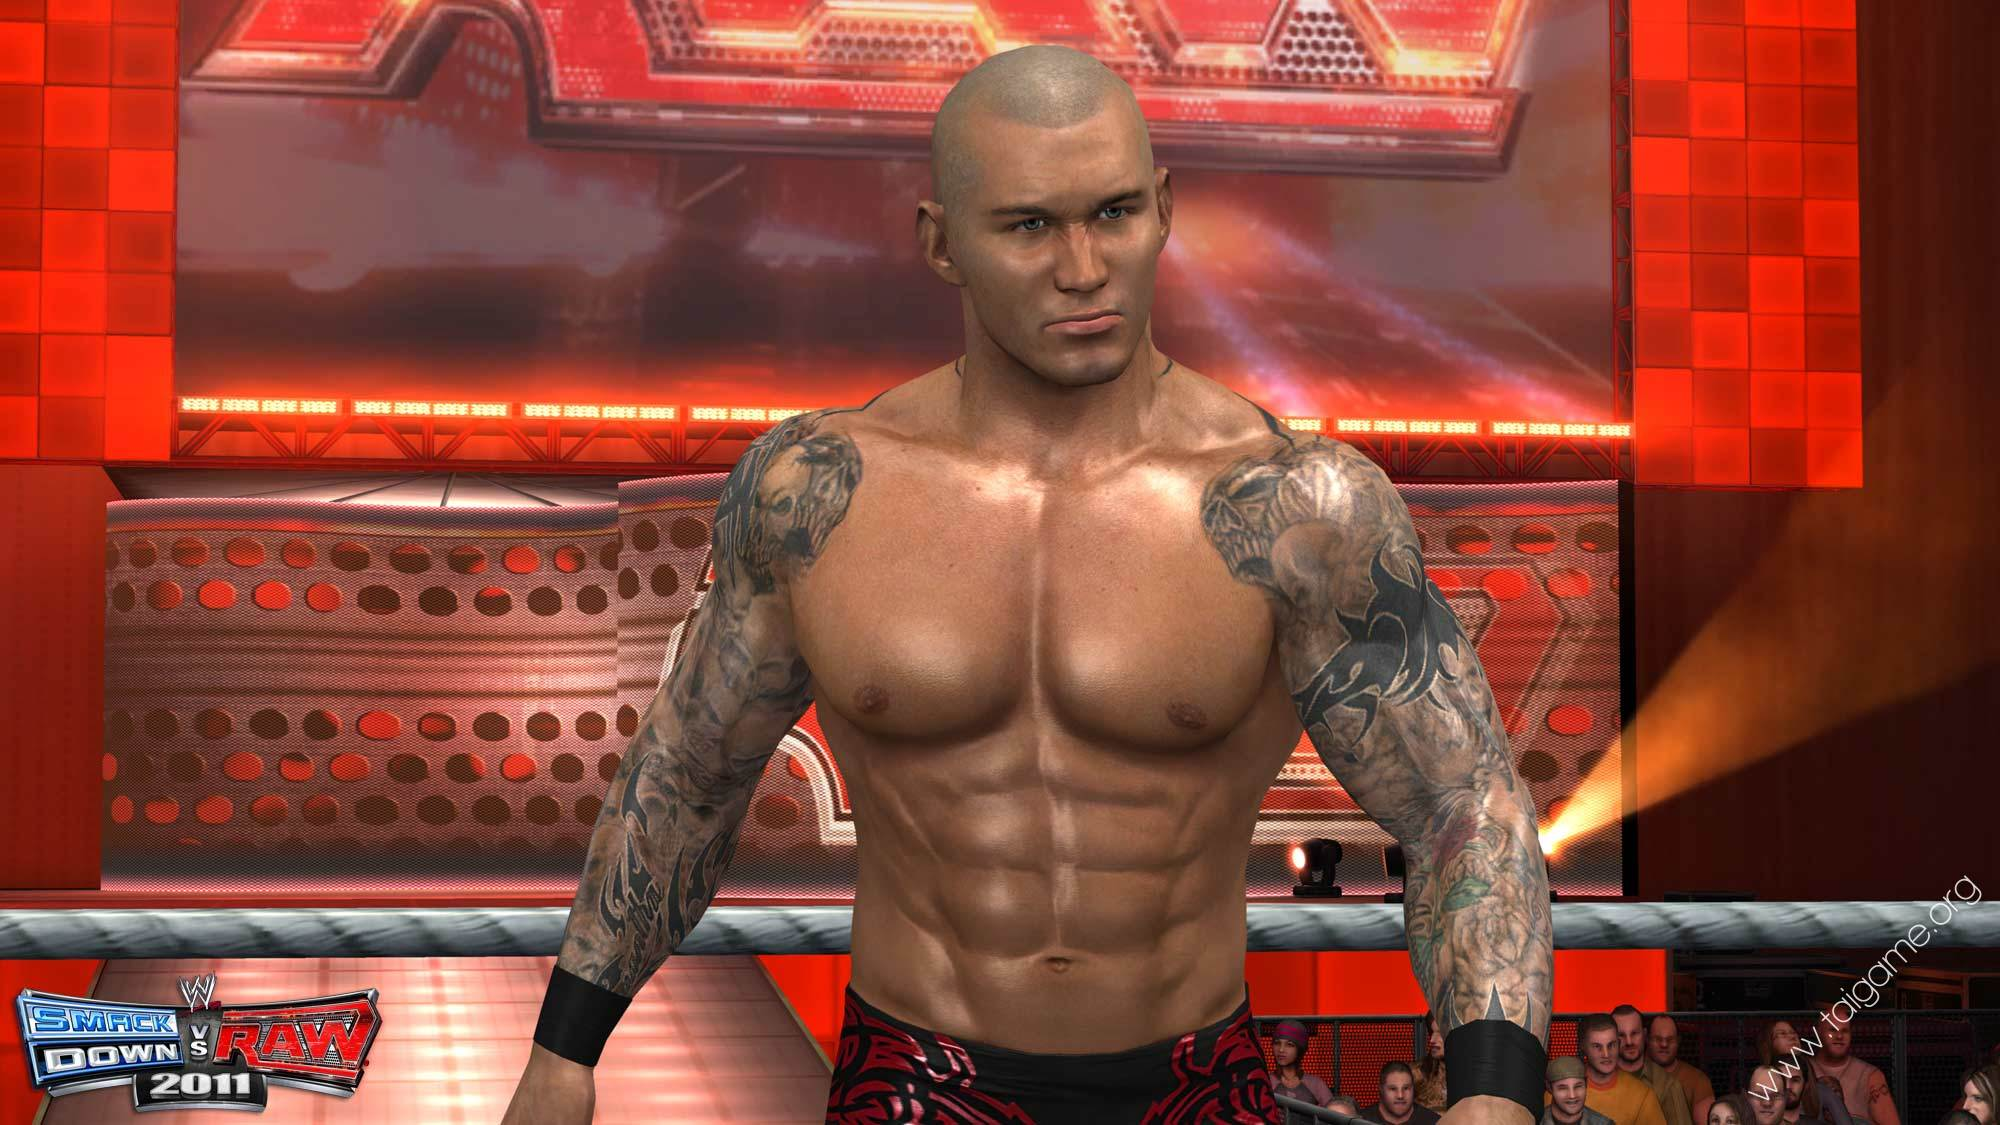 WWE SmackDown vs. Raw 2011 - Download Free Full Games | Fighting games